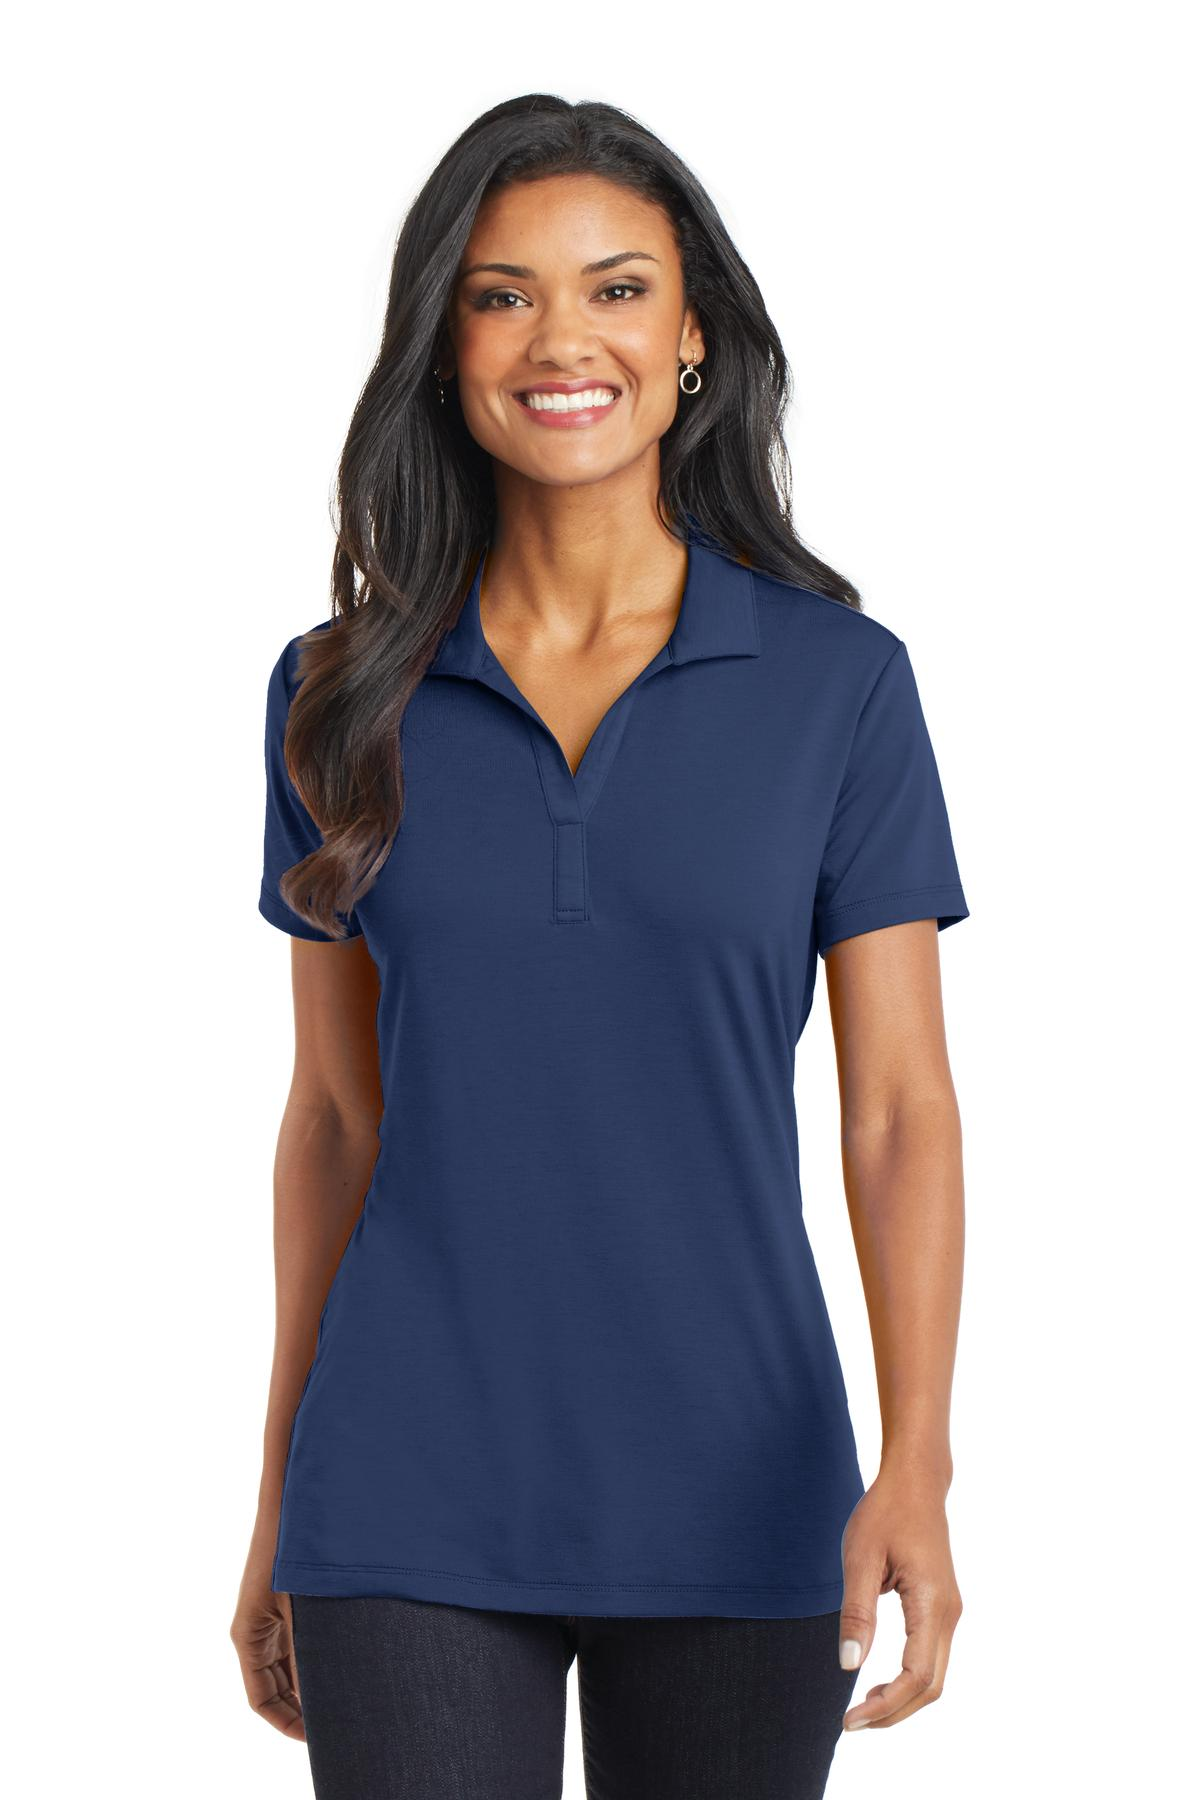 Port Authority® L568 - Ladies Cotton Touch Performance Polo